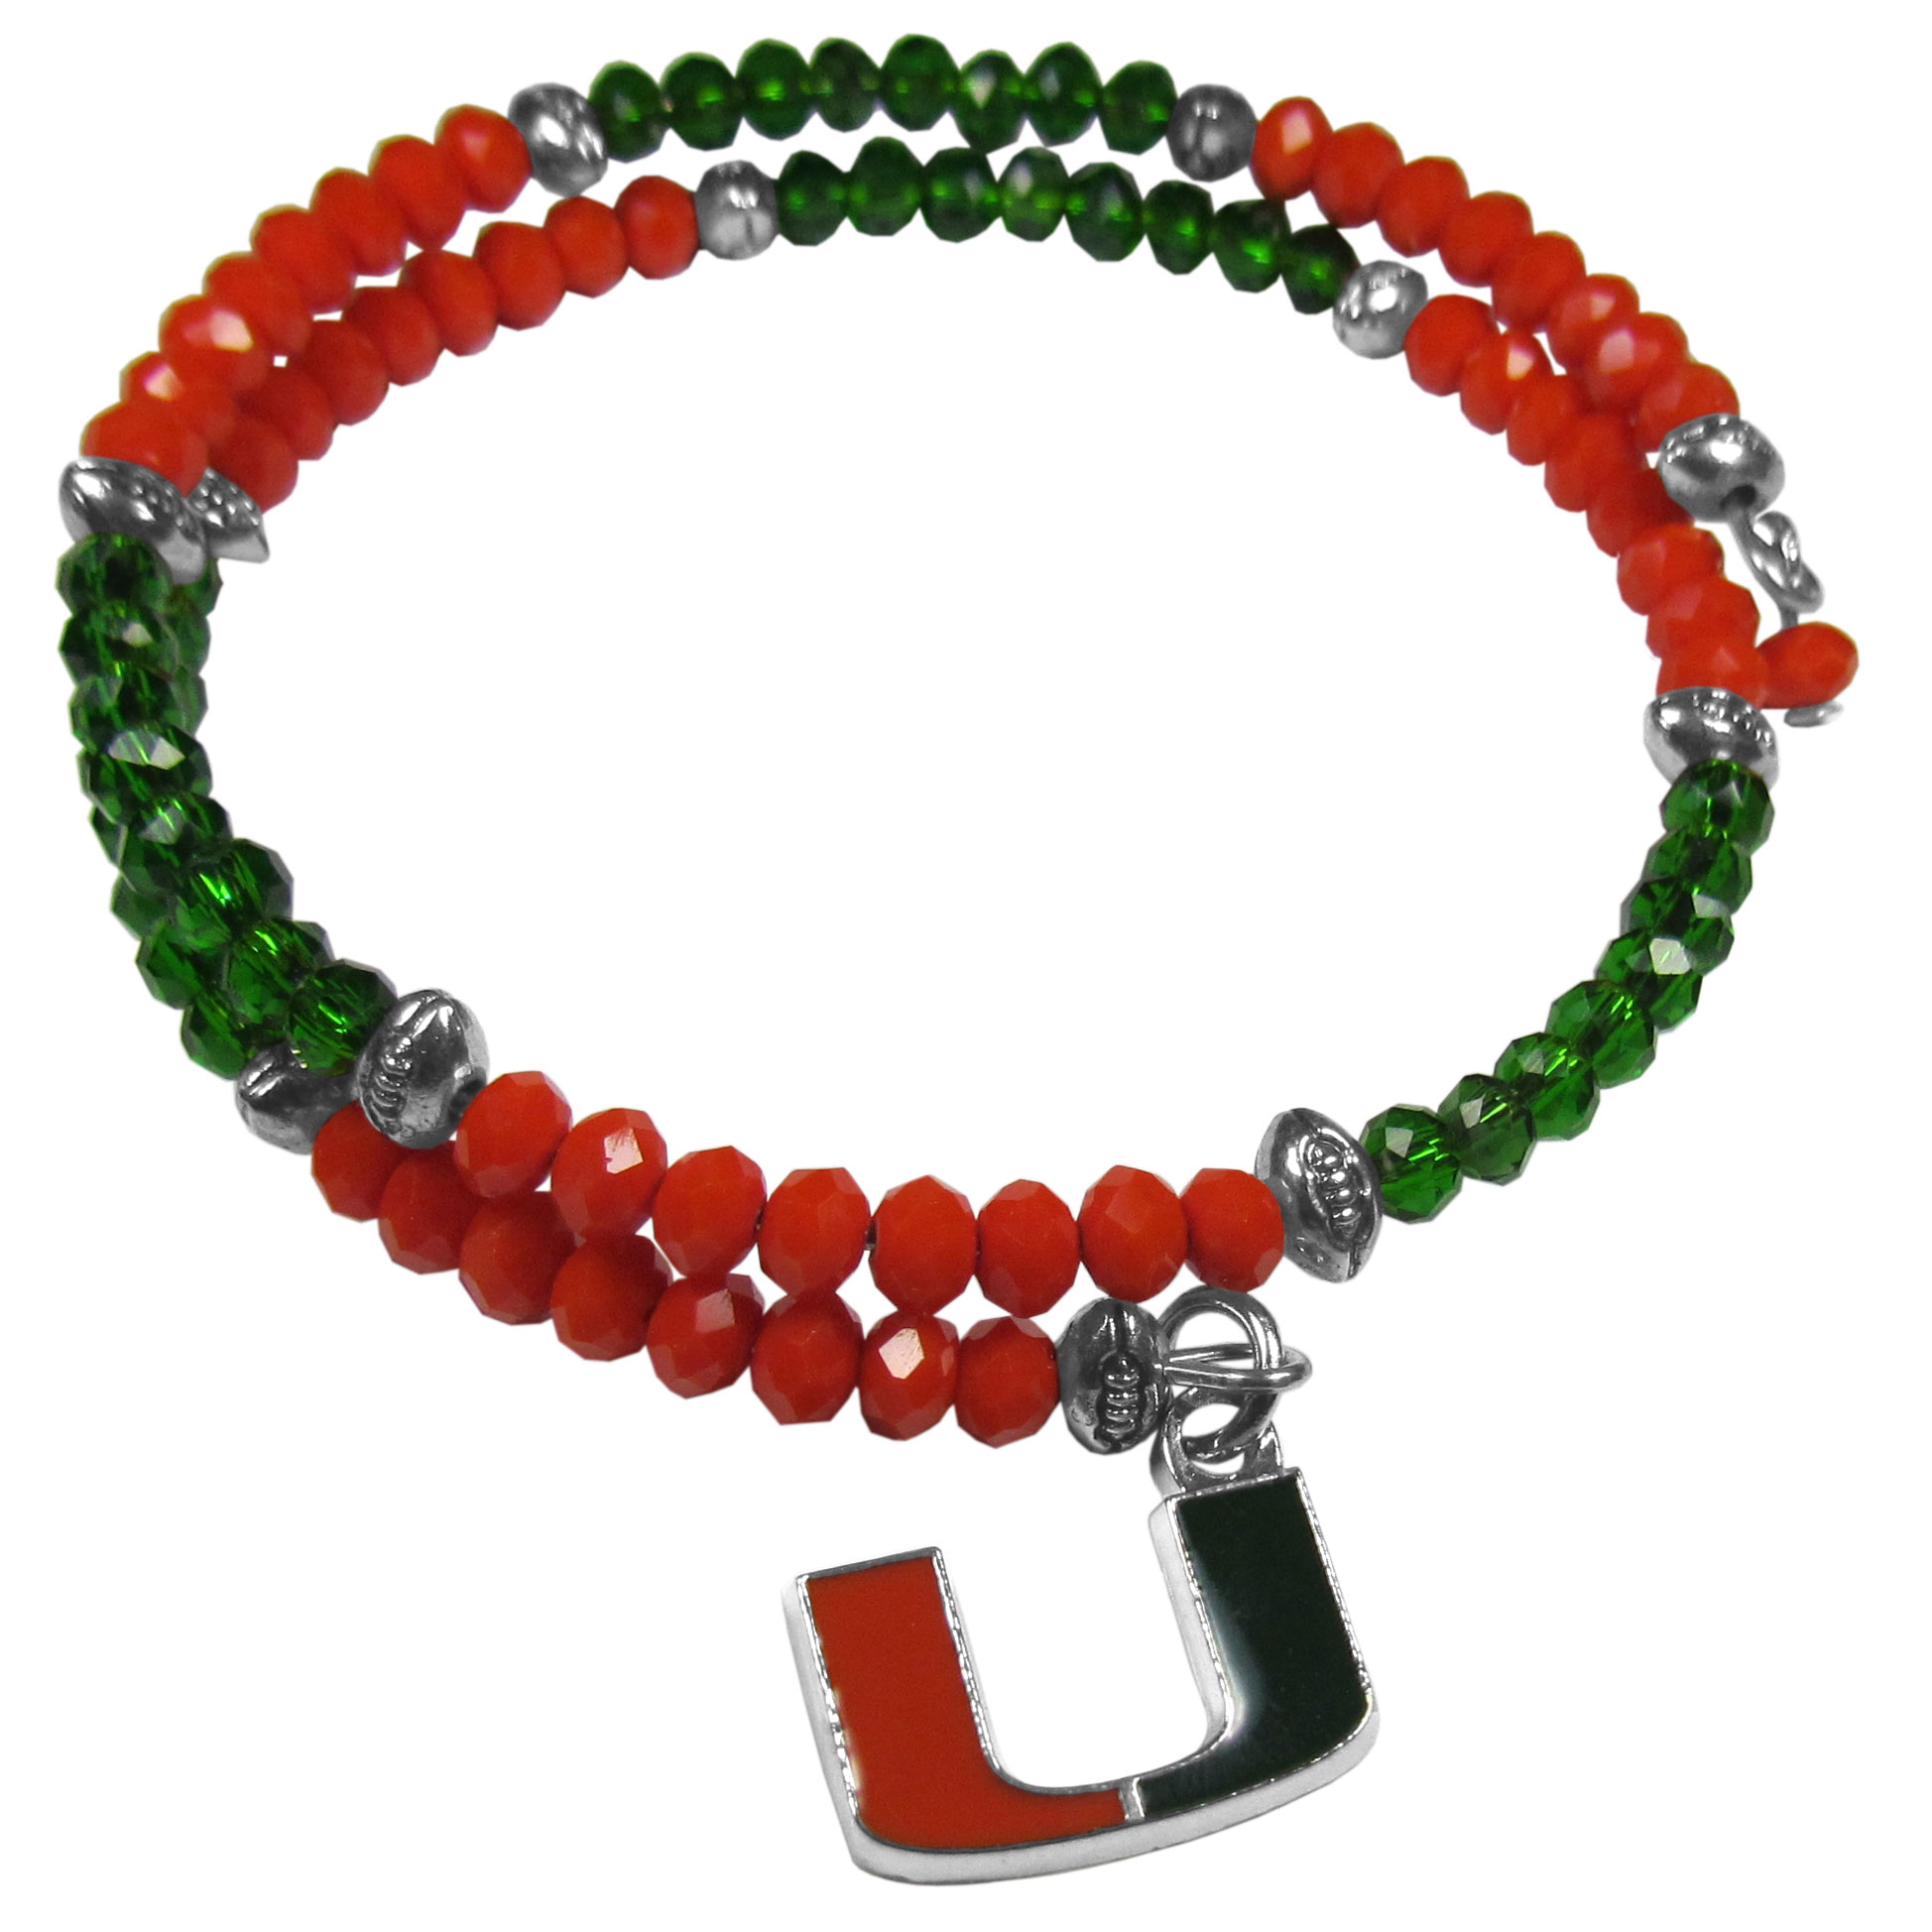 Miami Hurricanes Crystal Memory Wire Bracelet - Our Miami Hurricanes memory wire crystal bracelet is trendy way to show off your love of the game. The double wrap bracelet is completely covered in 4 mm crystals that are broken up with adorable football beads creating a designer look with a sporty twist. The bracelet features a fully cast, metal team charm that has expertly enameled team colors. This fashion jewelry piece is a must-have for the die-hard fan with chic style.